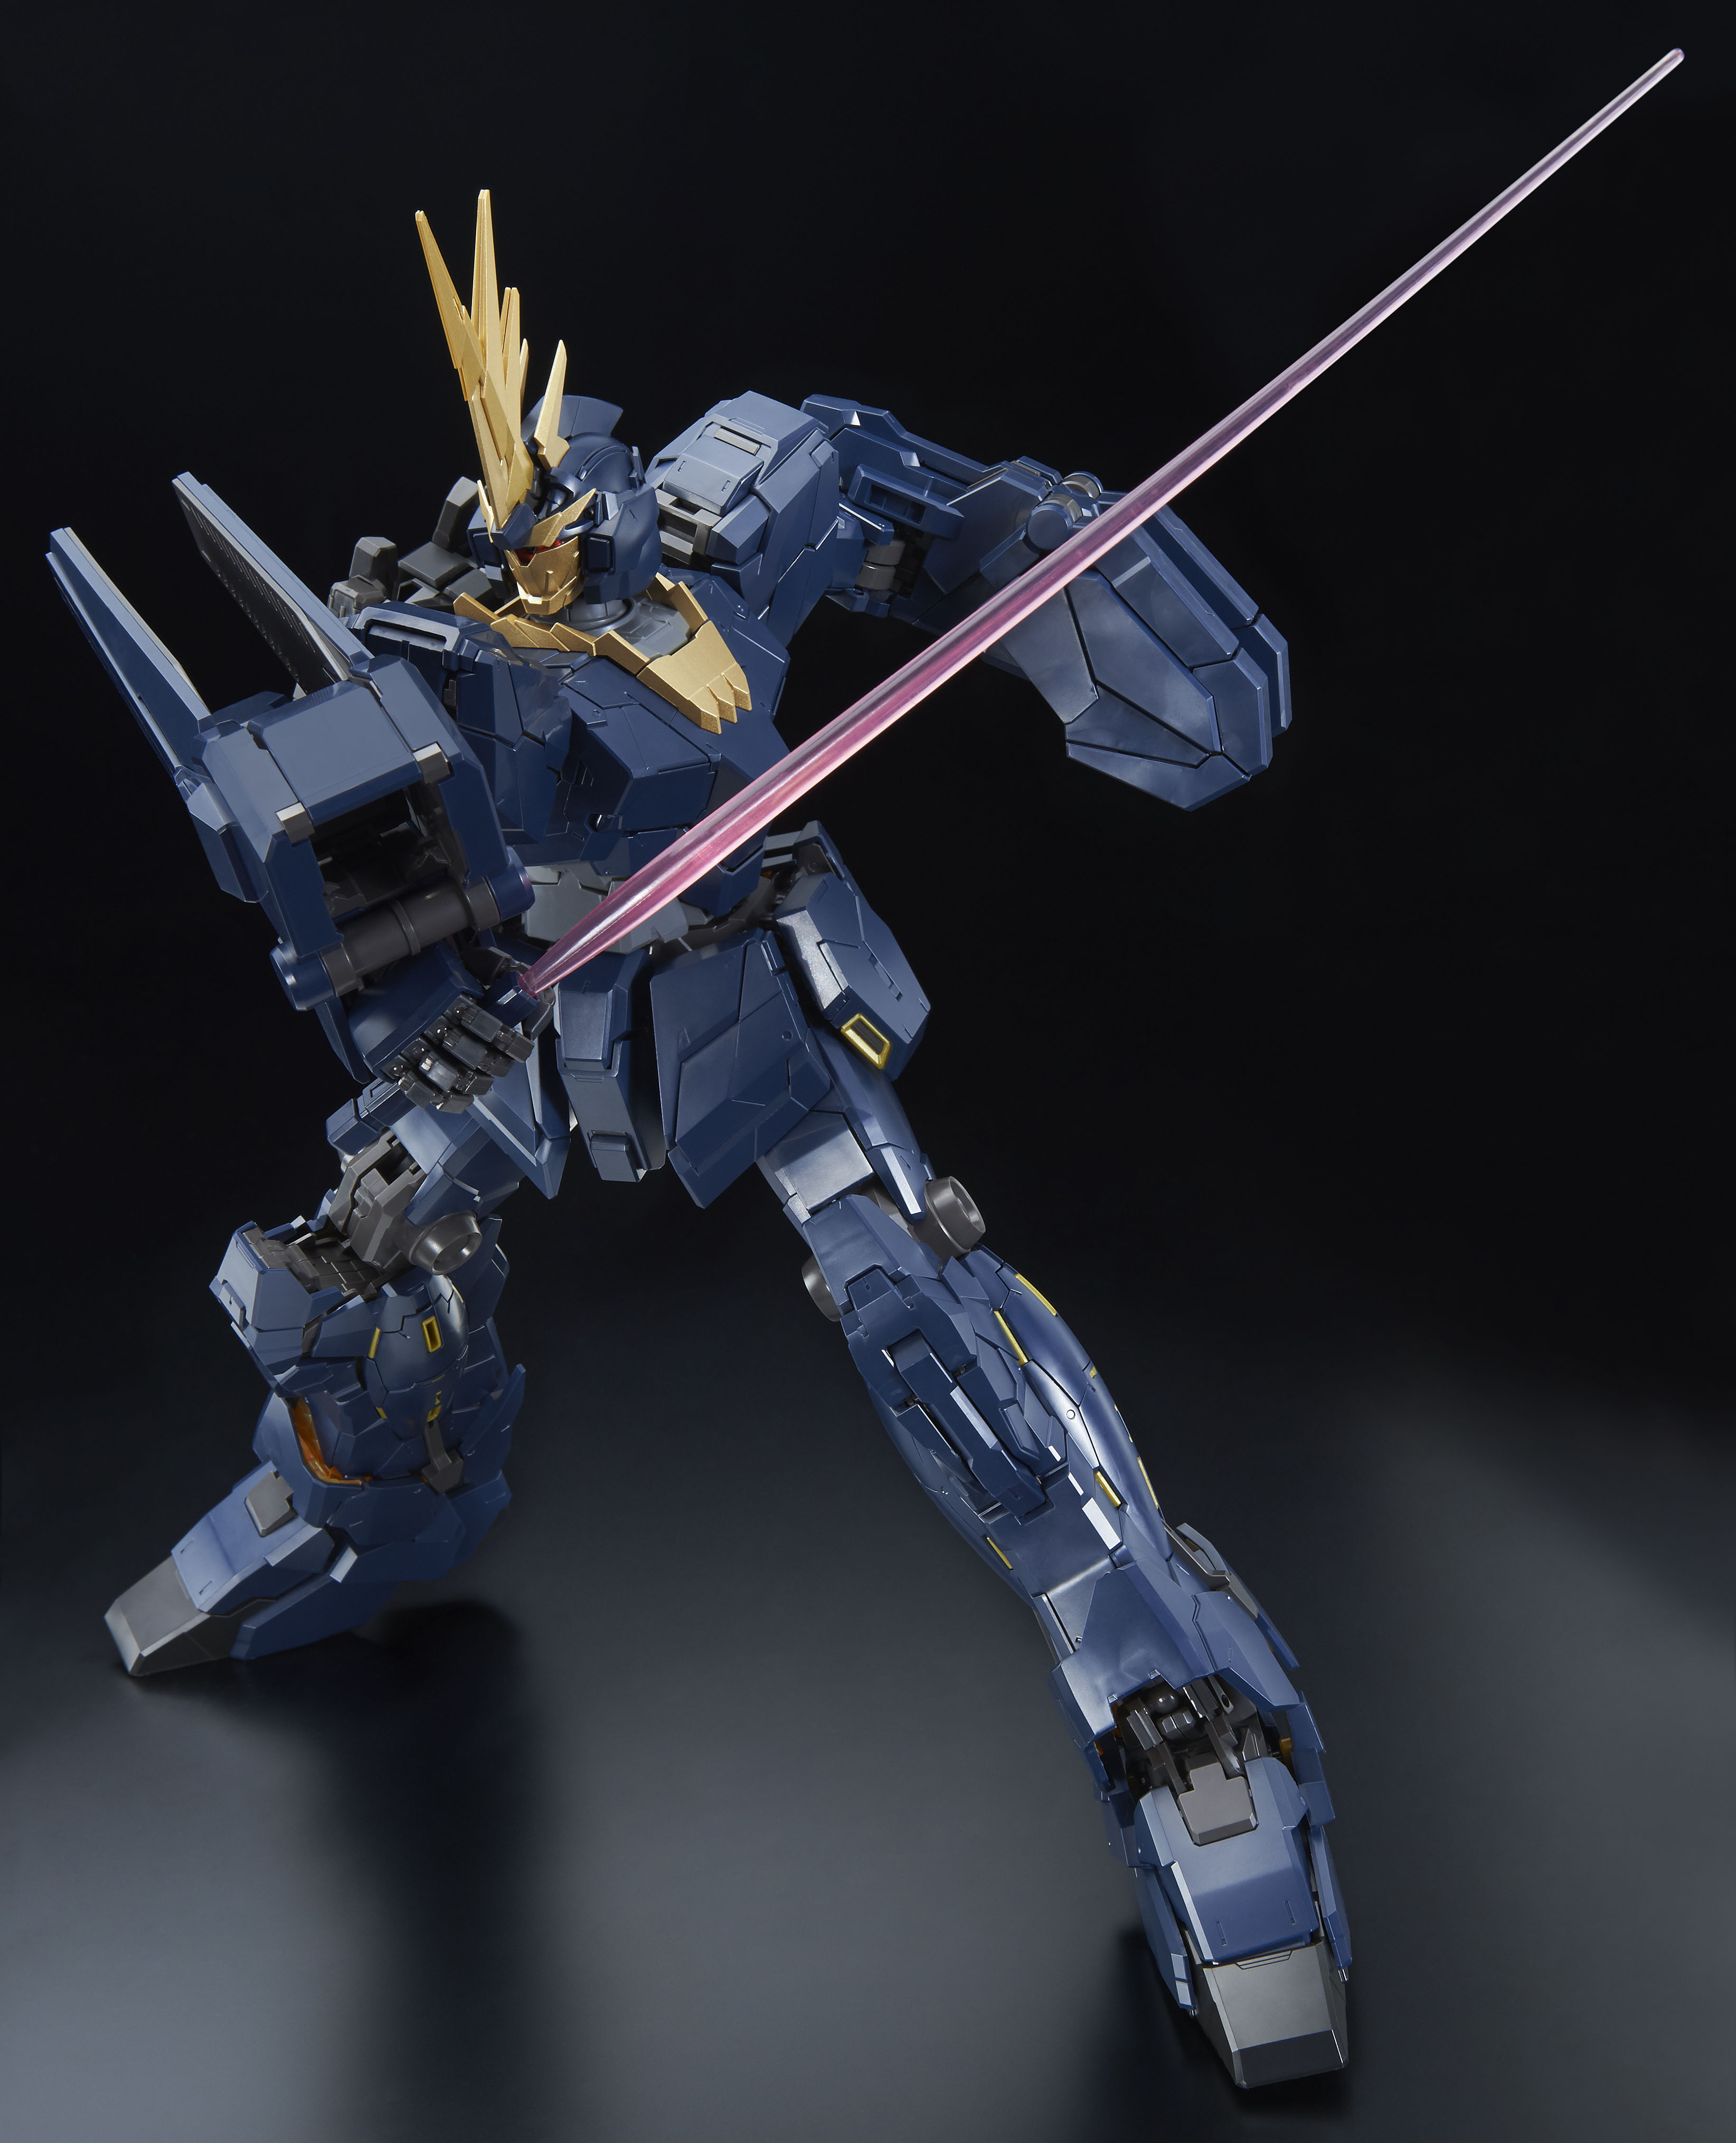 PG 1/60 EXPANSION UNIT ARMED ARMOR VN/BS [Sep 2020 Delivery]